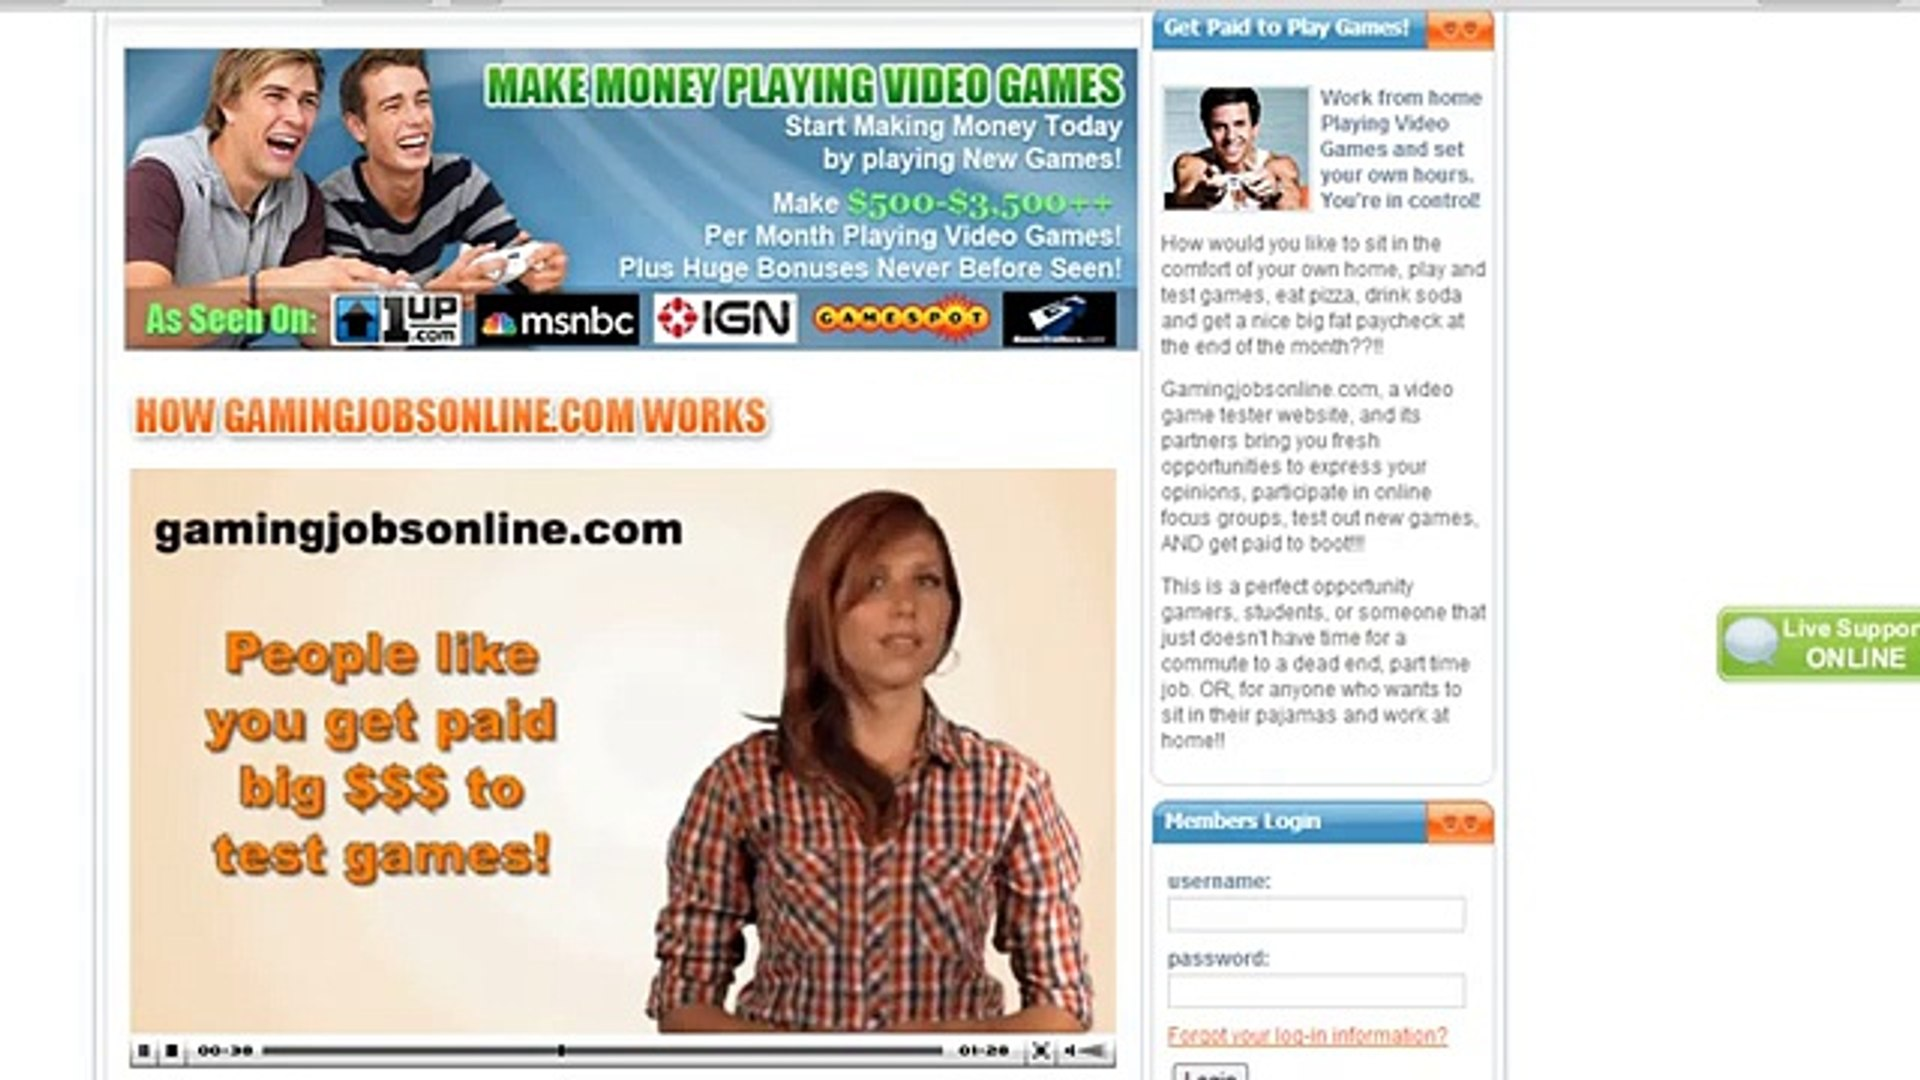 How To Become A Game Tester  Gaming Jobs Online Review  gaming jobs online  gamingjobsonline com